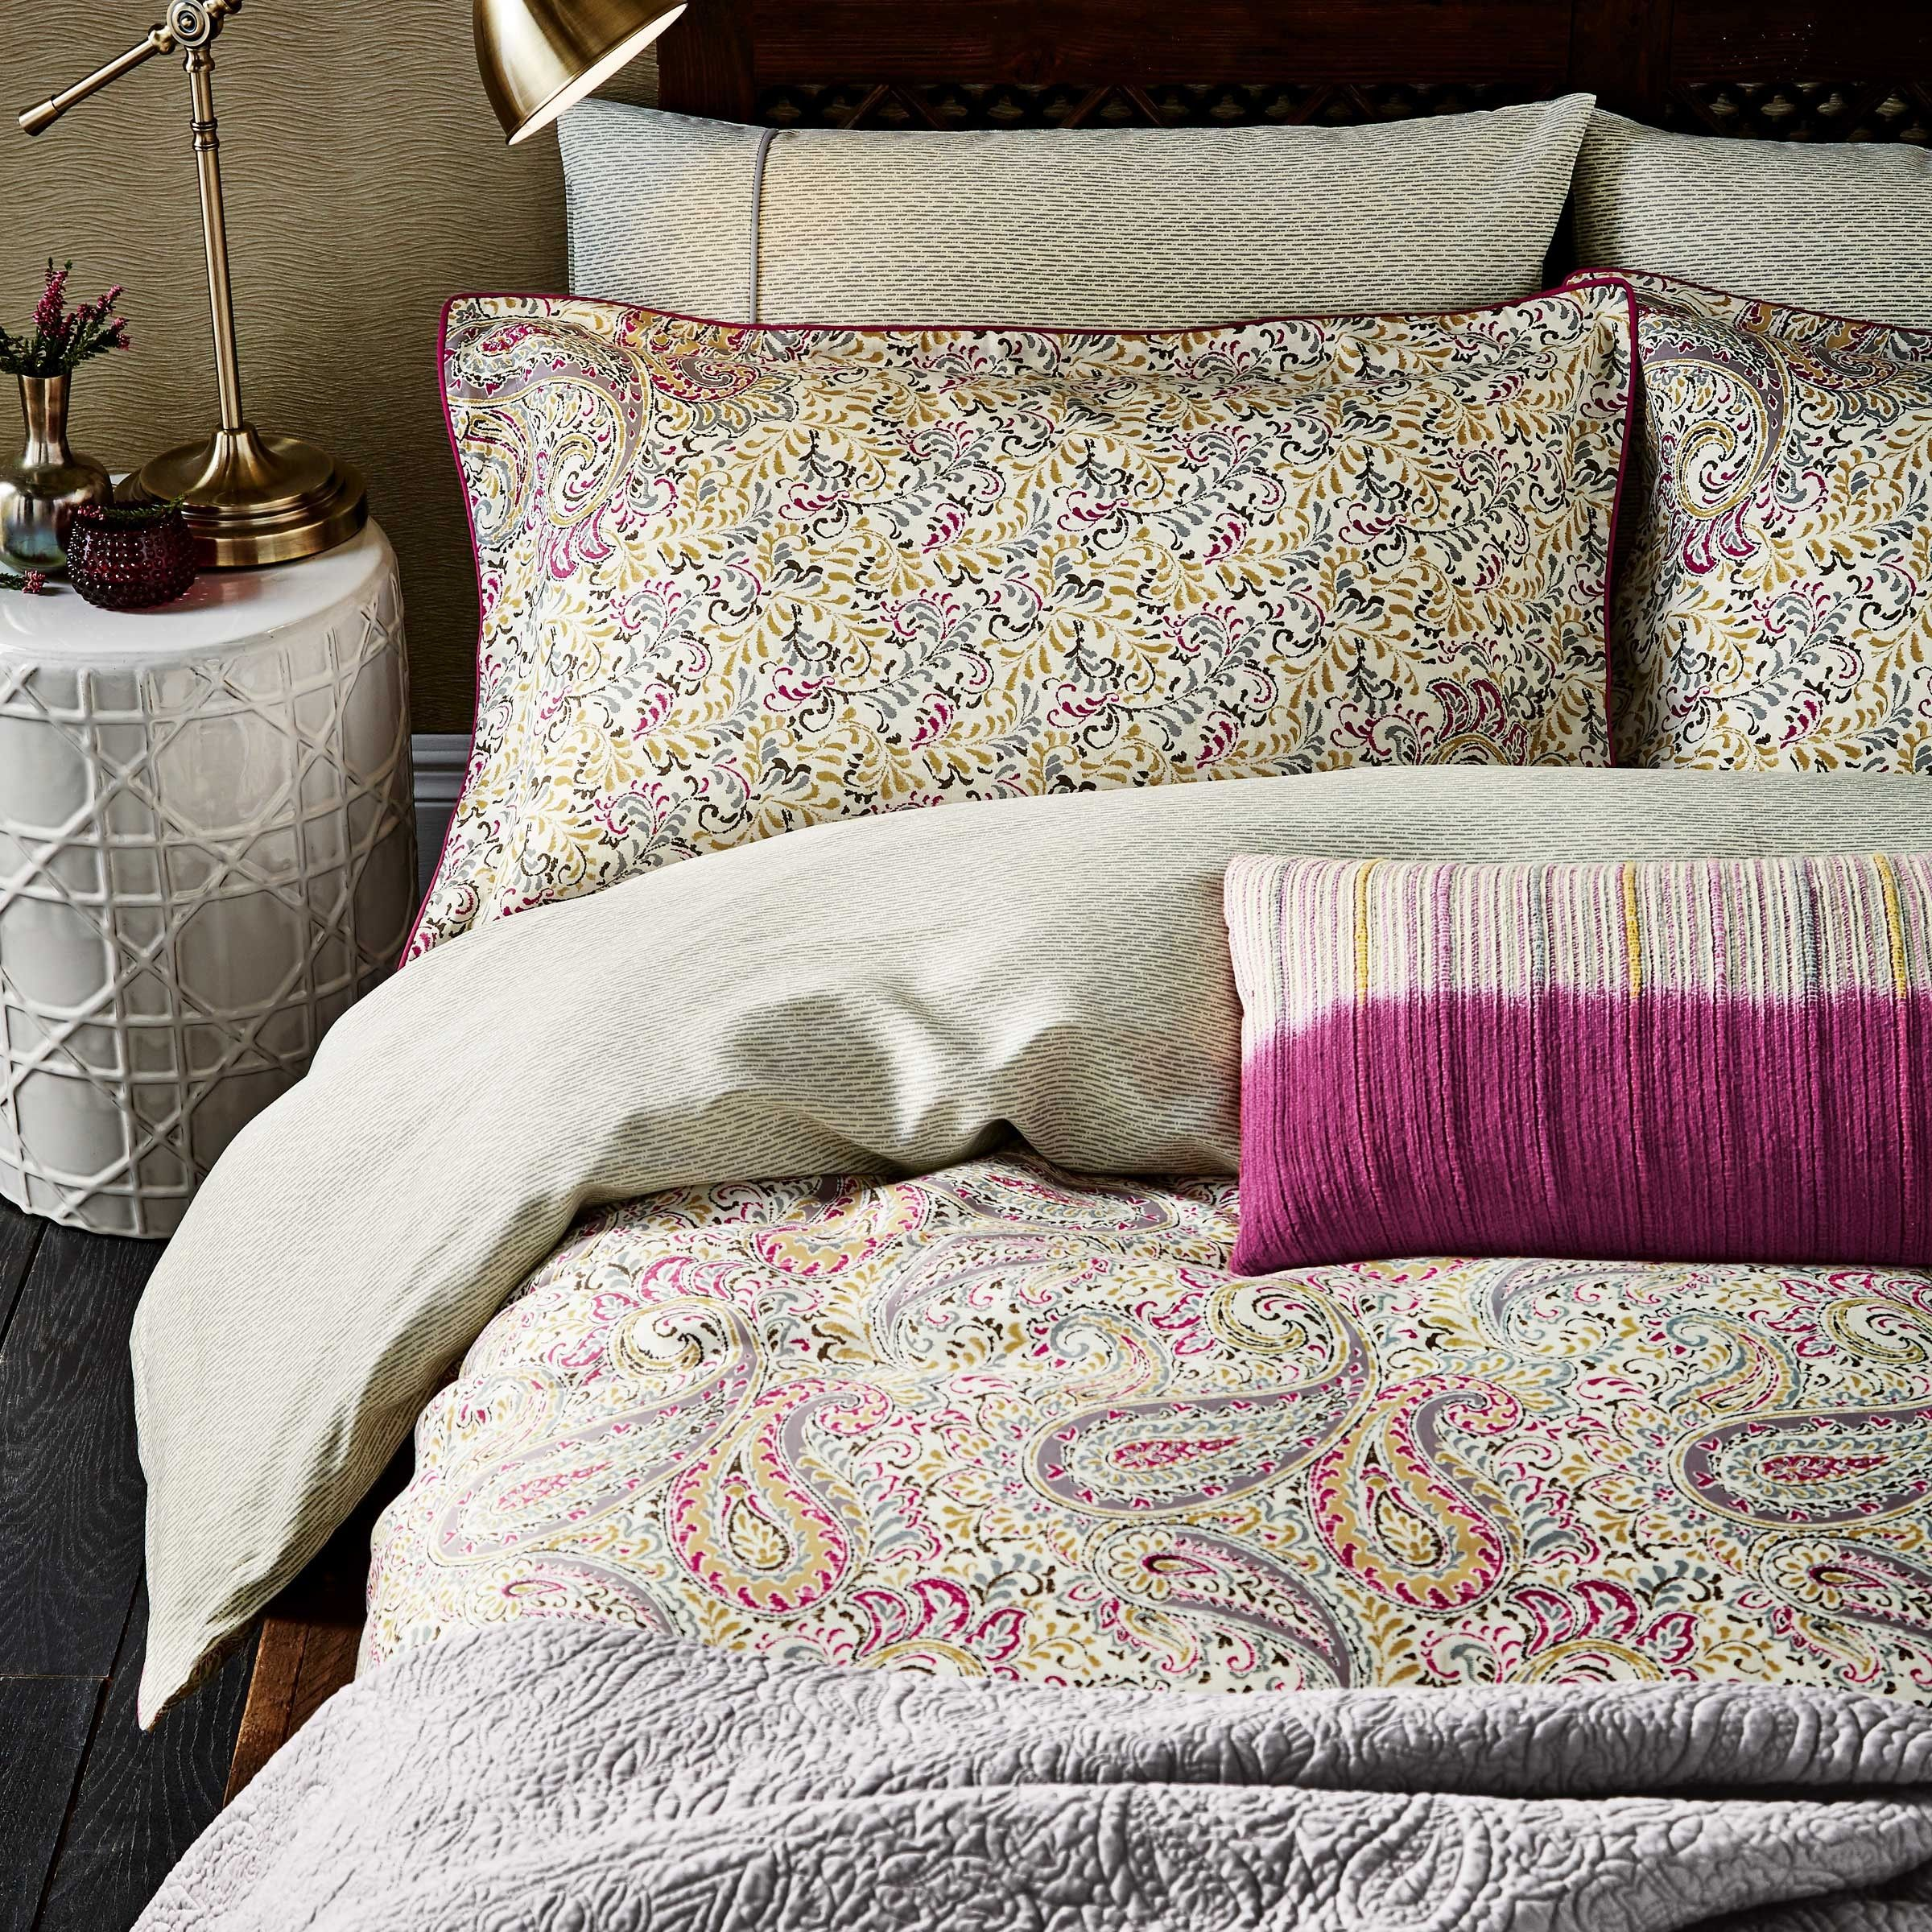 Patterned Bedding Awesome Decorating Ideas